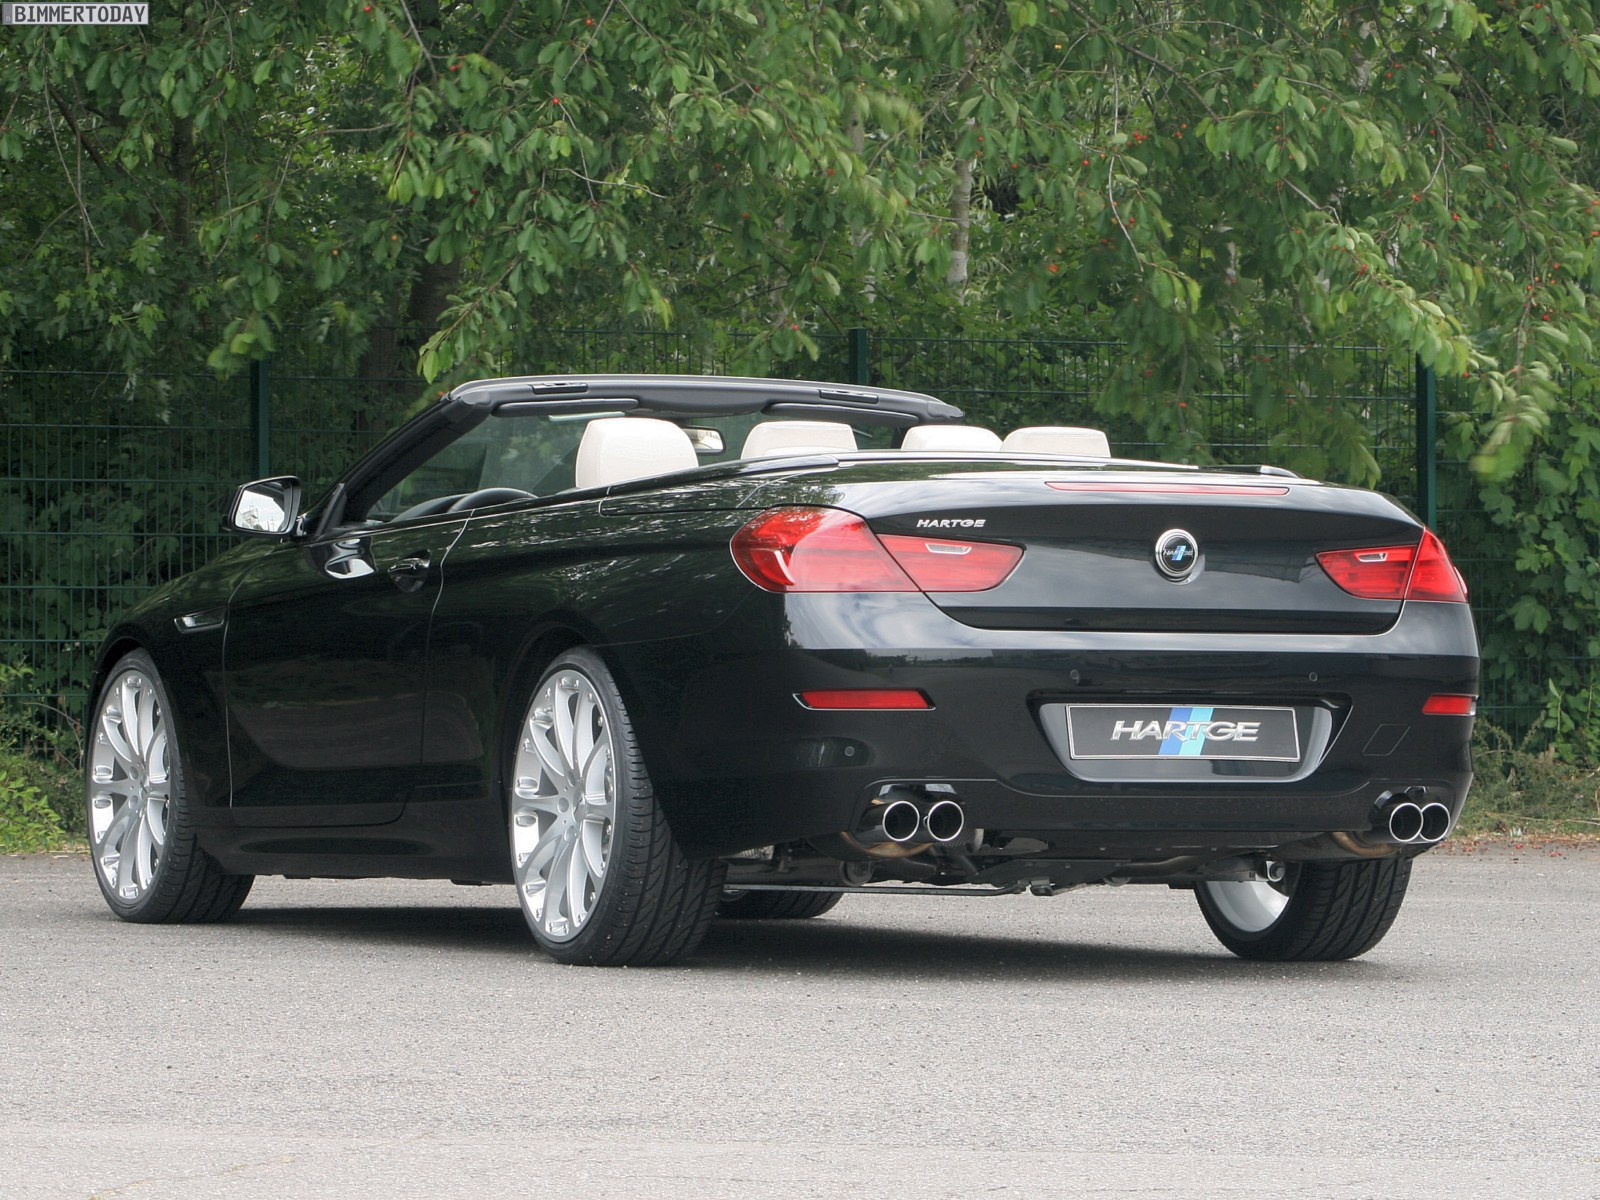 hartge stellt programm f r das bmw 6er cabrio f12 vor. Black Bedroom Furniture Sets. Home Design Ideas